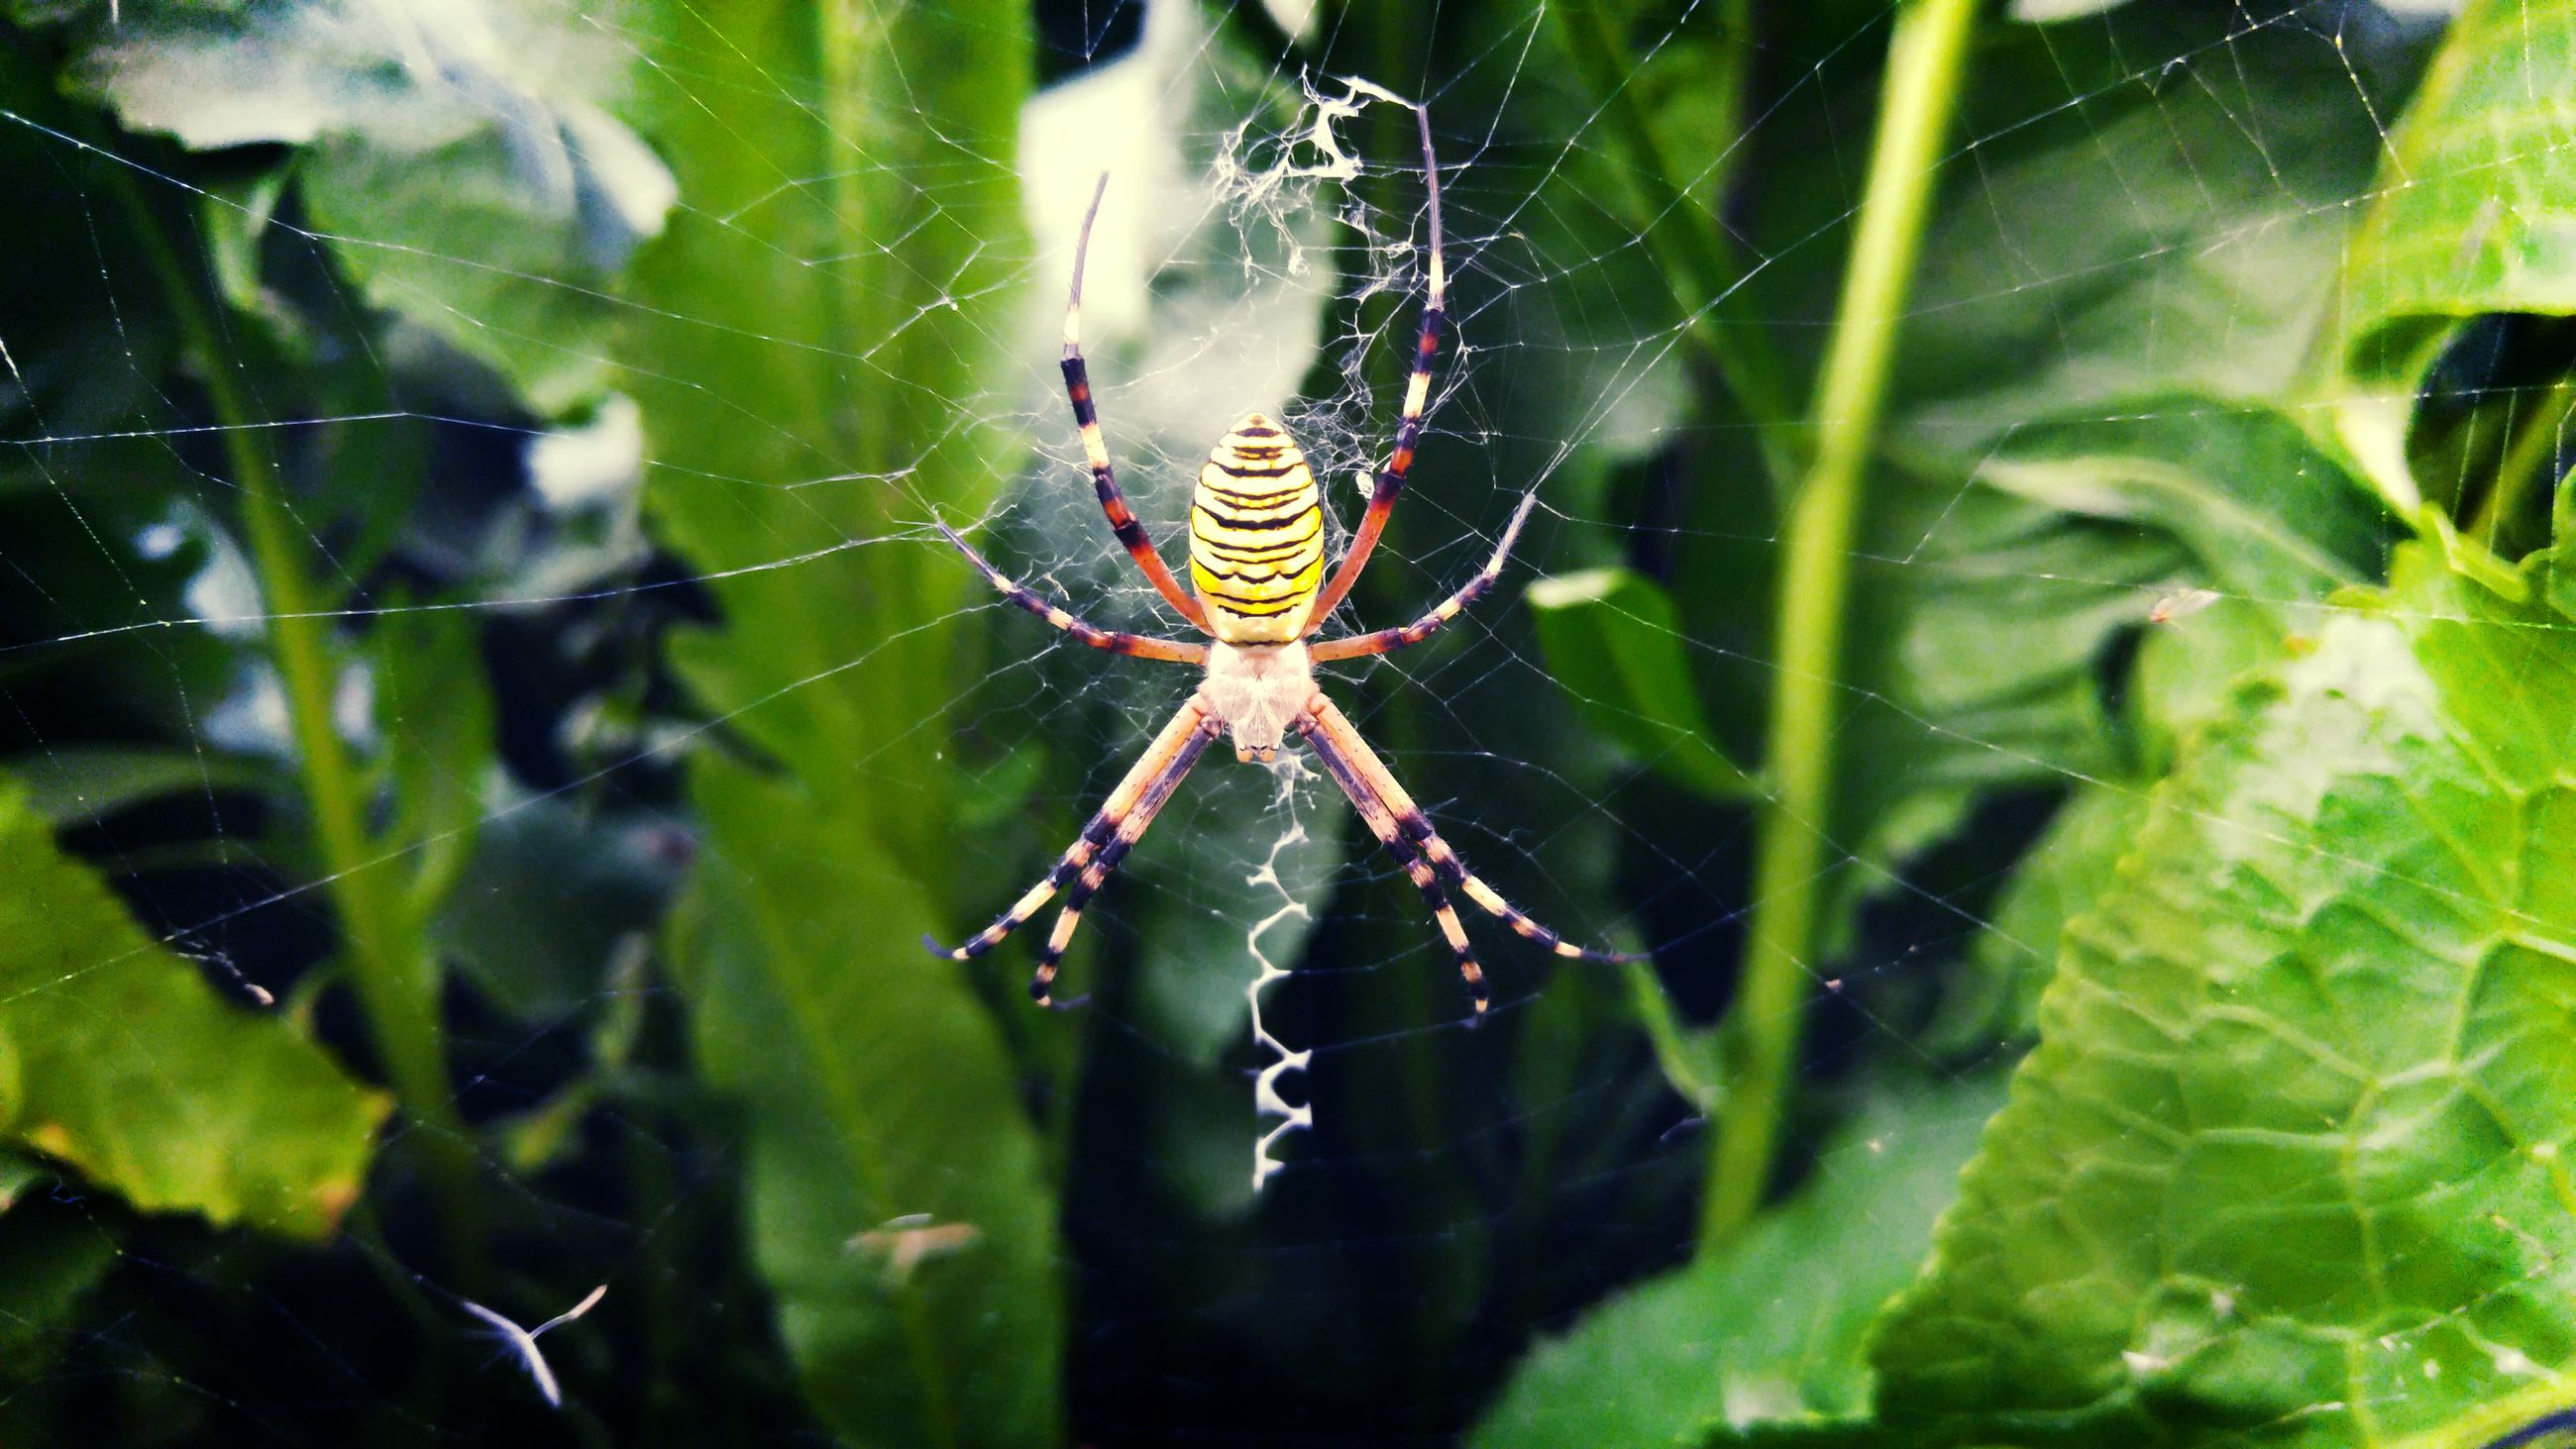 spider web, spider, fragility, one animal, close-up, web, spinning, animal themes, nature, survival, animals in the wild, beauty in nature, focus on foreground, outdoors, insect, animal leg, no people, intricacy, day, weaving, complexity, animal wildlife